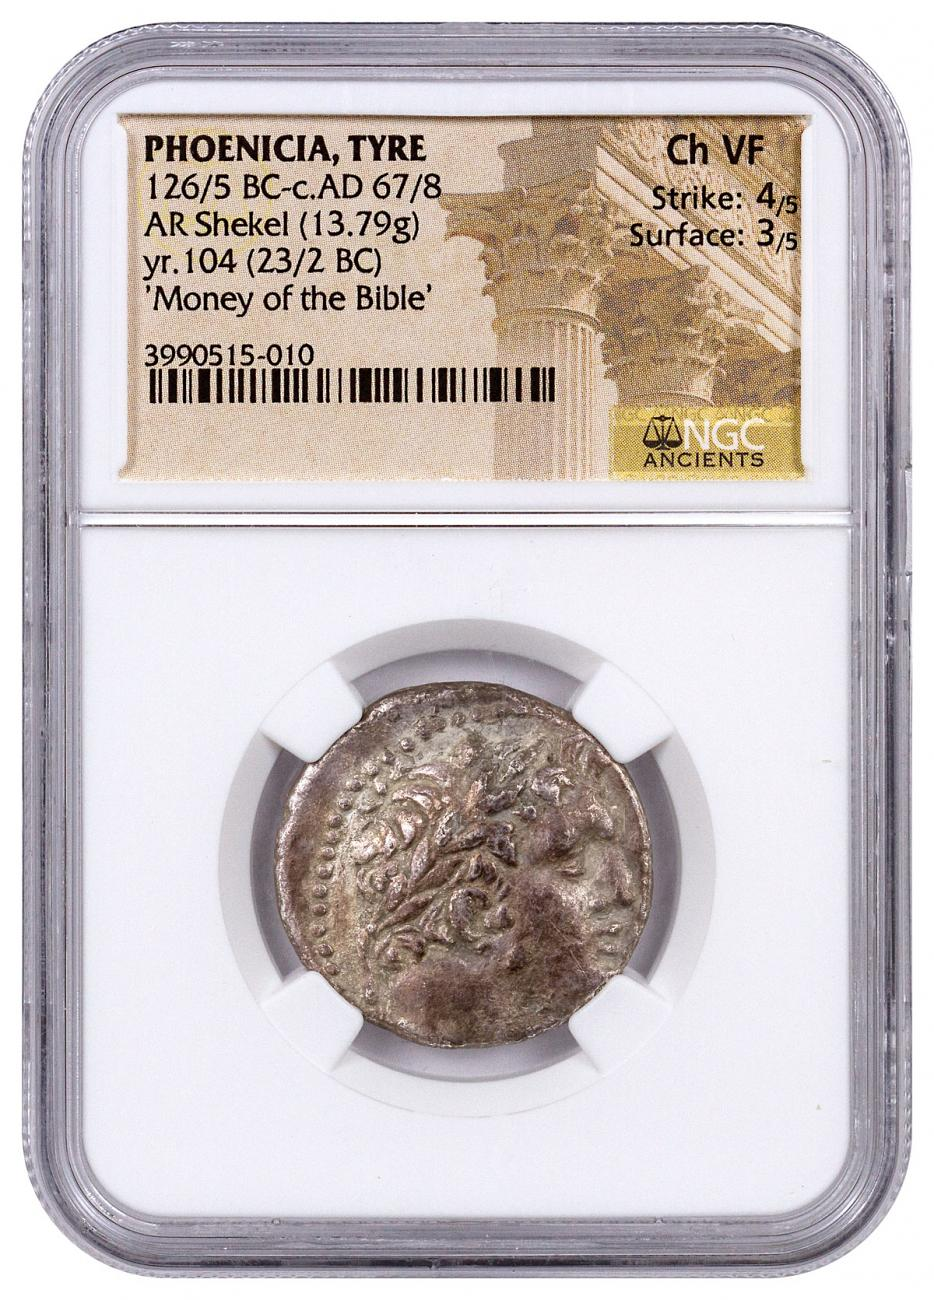 Phoenicia, Tyre Silver Shekel (126/5 BC-c.AD 67/8) - Money of the Bible Yr.104 (23/2 BC) - obv. Melkart/rv. Eagle on Prow NGC Ch. VF (Strike: 4/5, Surface: 3/5)